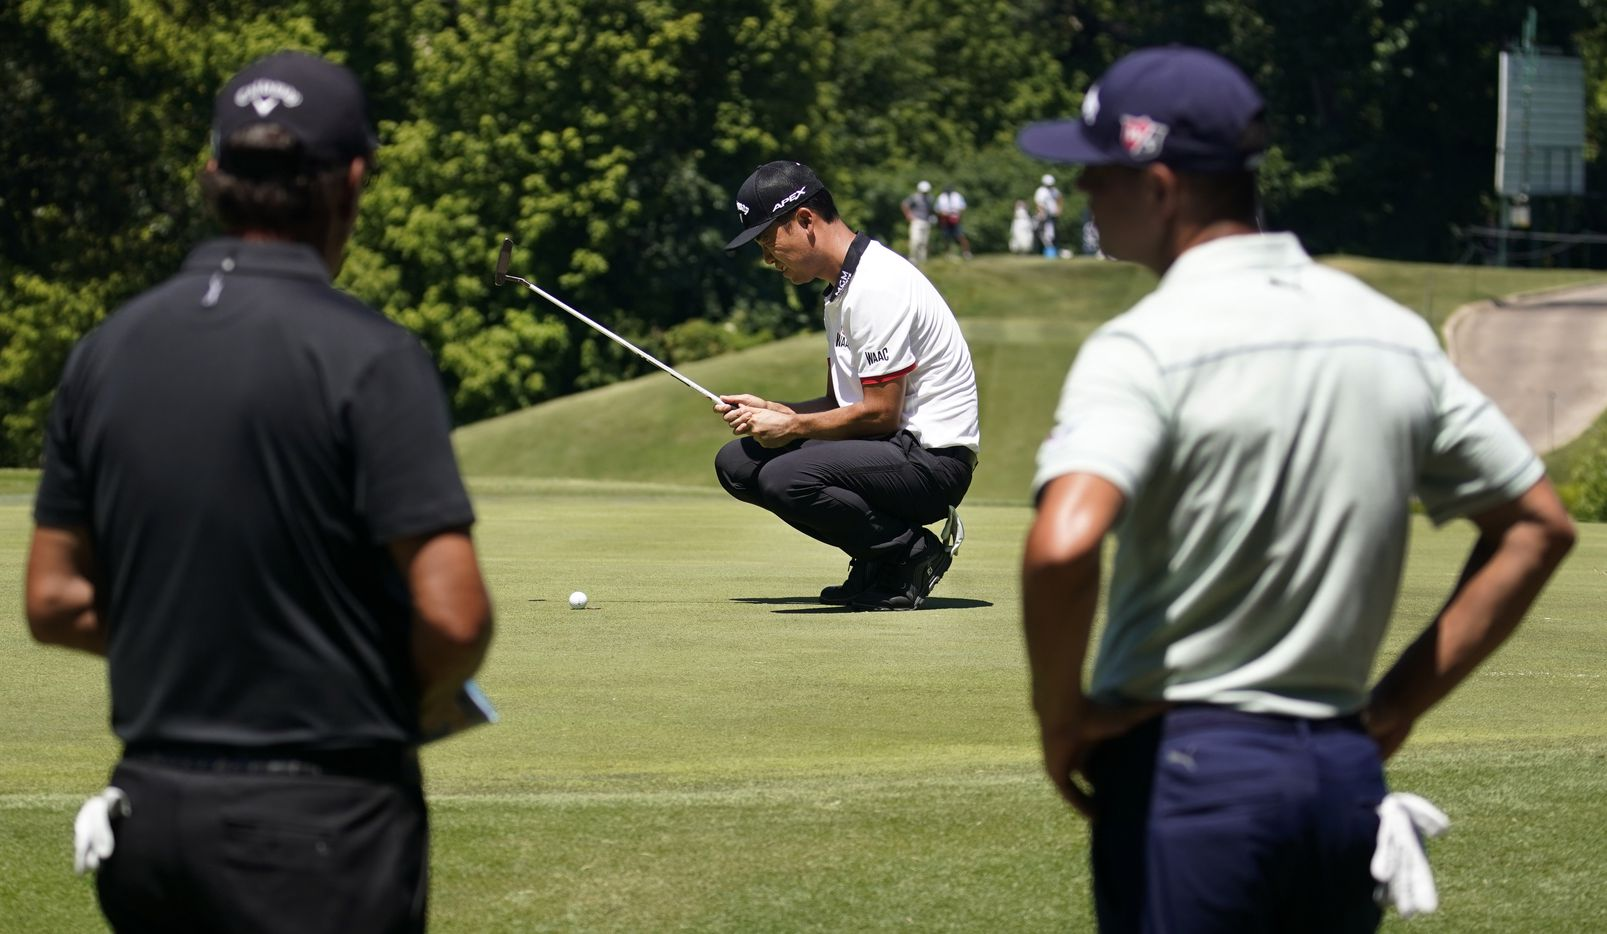 PGA Tour golfer Kevin Na lines up his putt on No. 8 as he plays with Phil Mickelson (left) and Gary Woodland  during the second round of the Charles Schwab Challenge at the Colonial Country Club in Fort Worth, Friday, June 12, 2020.  The Challenge is the first tour event since the COVID-19 pandemic began. (Tom Fox/The Dallas Morning News)